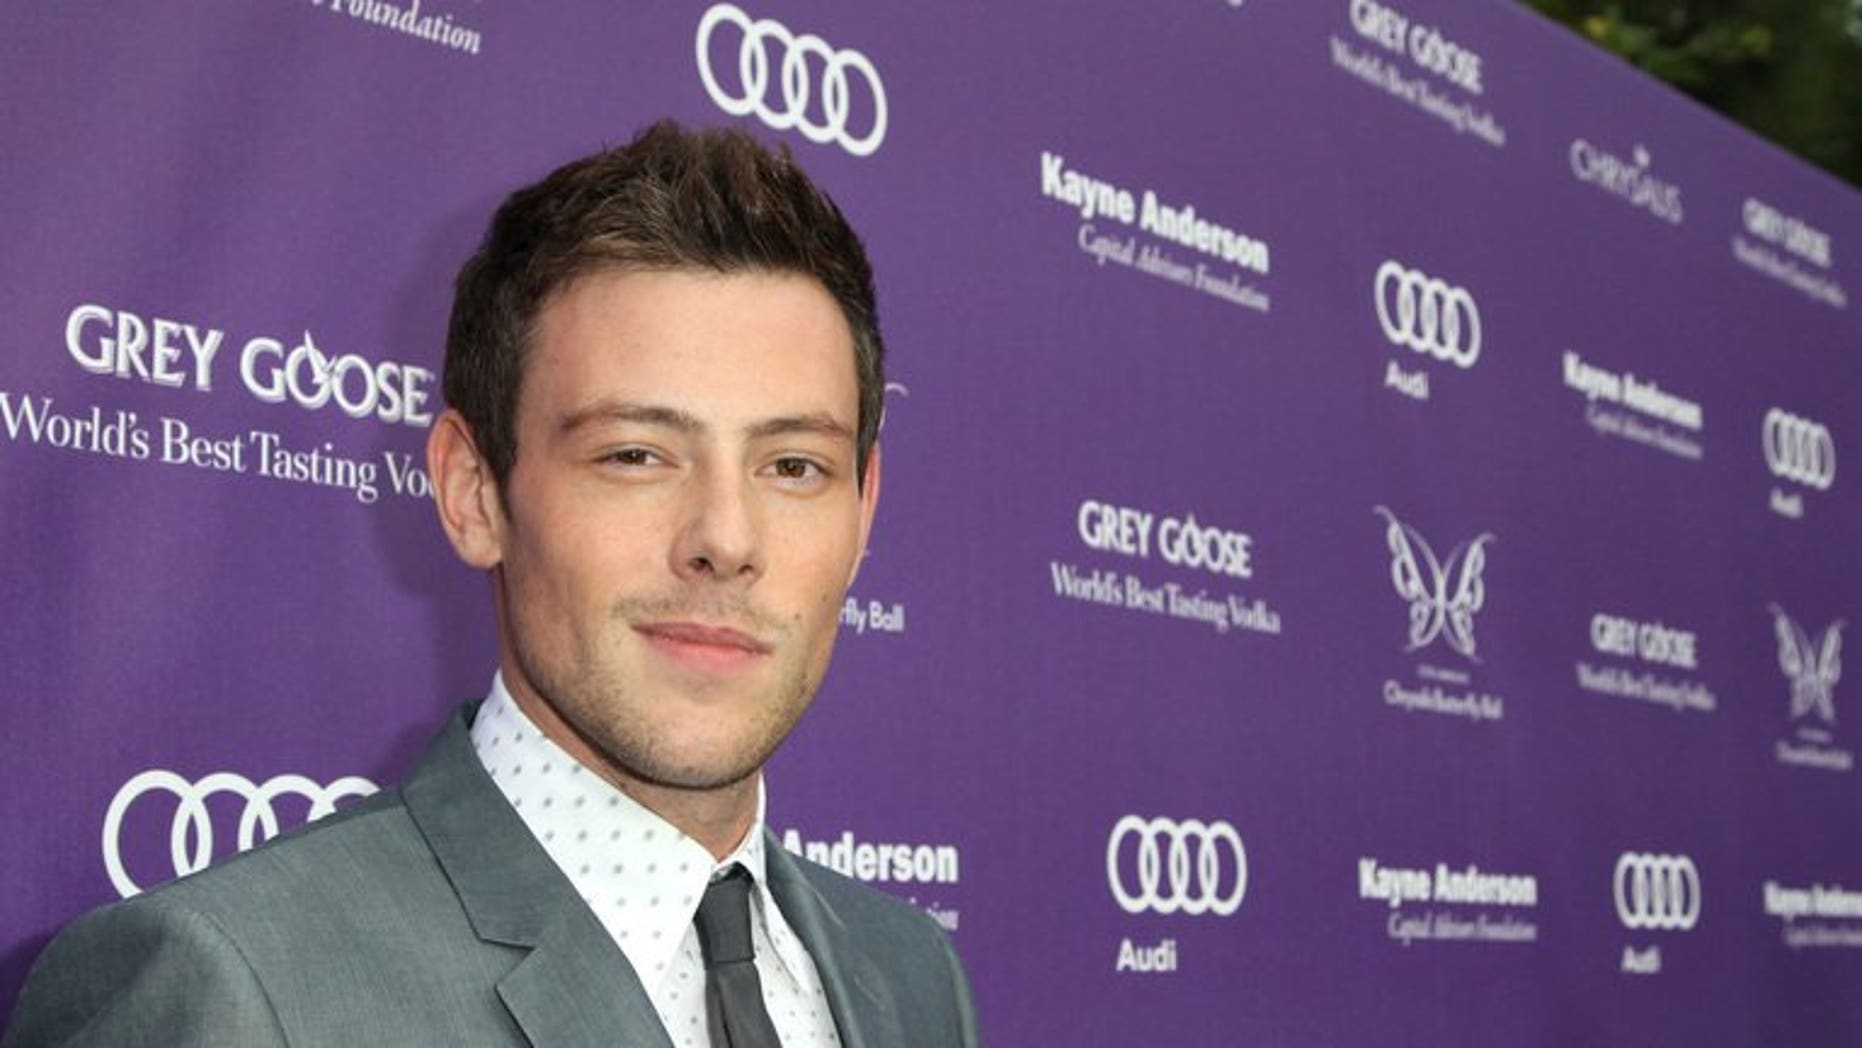 Actor Cory Monteith is pictured at the Chrysalis Butterfly Ball on June 8, 2013 in Los Angeles, California. The 'Glee' TV series star has been found dead in his hotel room in the western Canadian city of Vancouver, local police reported.